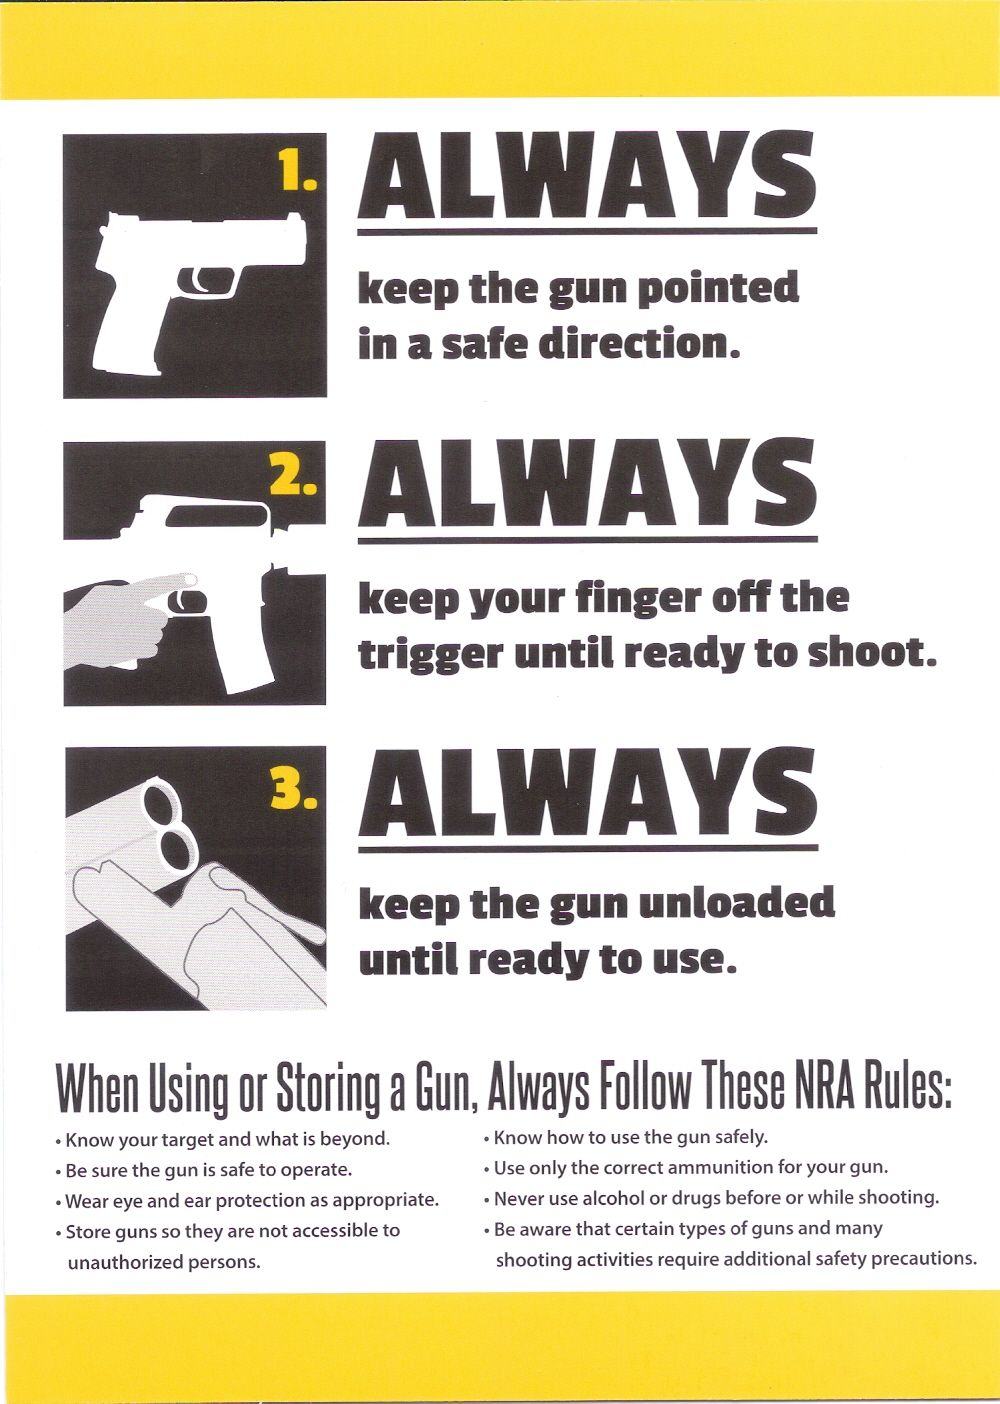 Pin on Firearms and Safety Instructions